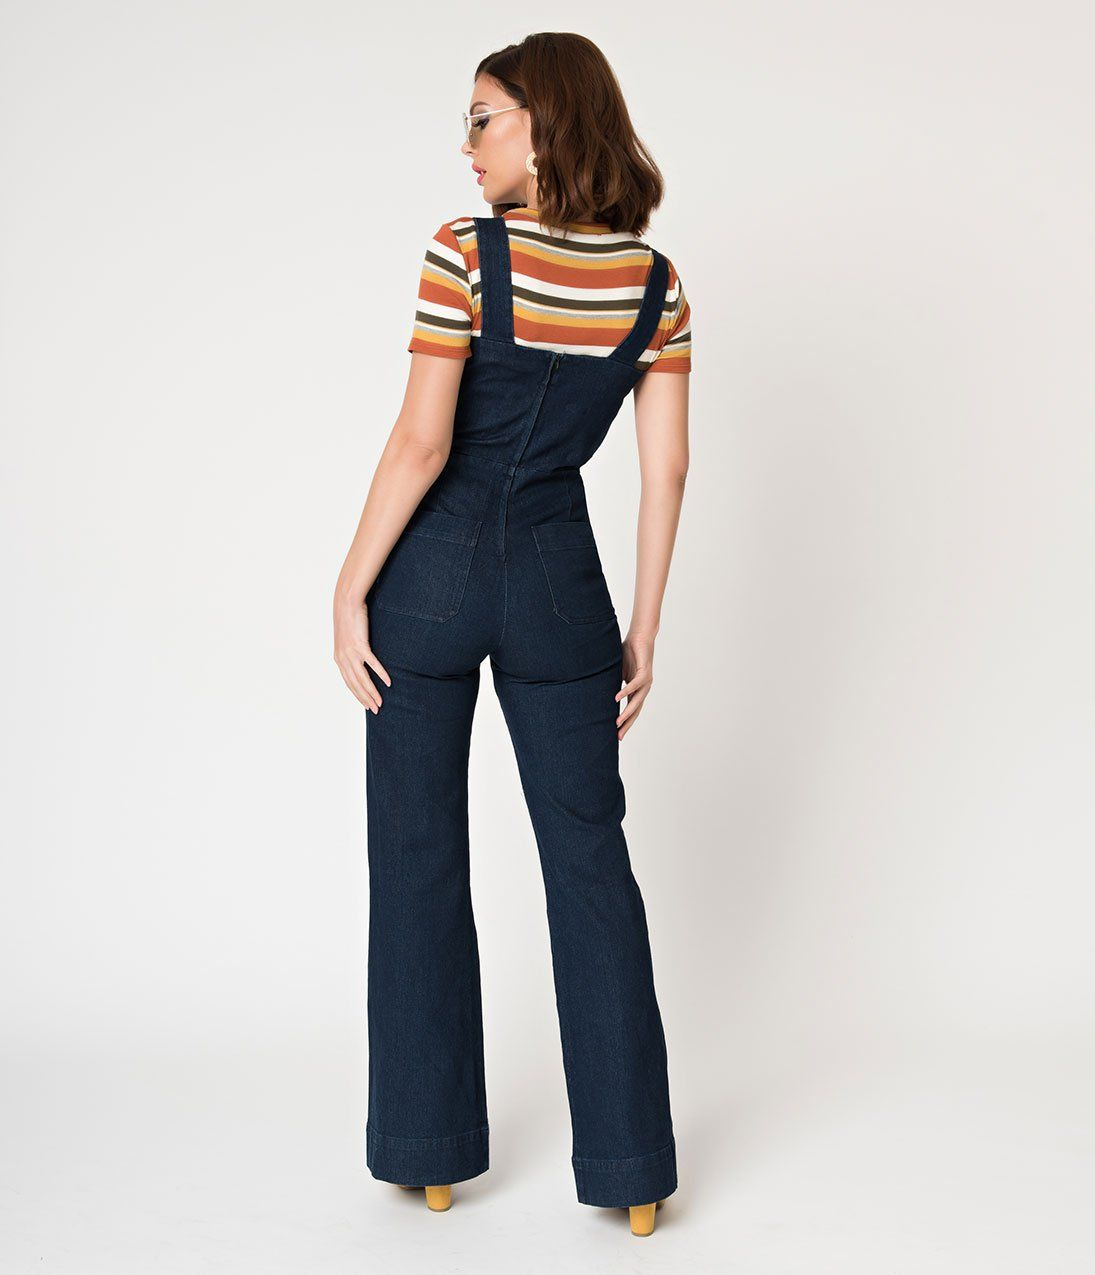 f75b7676fe6 Cute Vintage Rompers and Jumpsuits – Unique Vintage